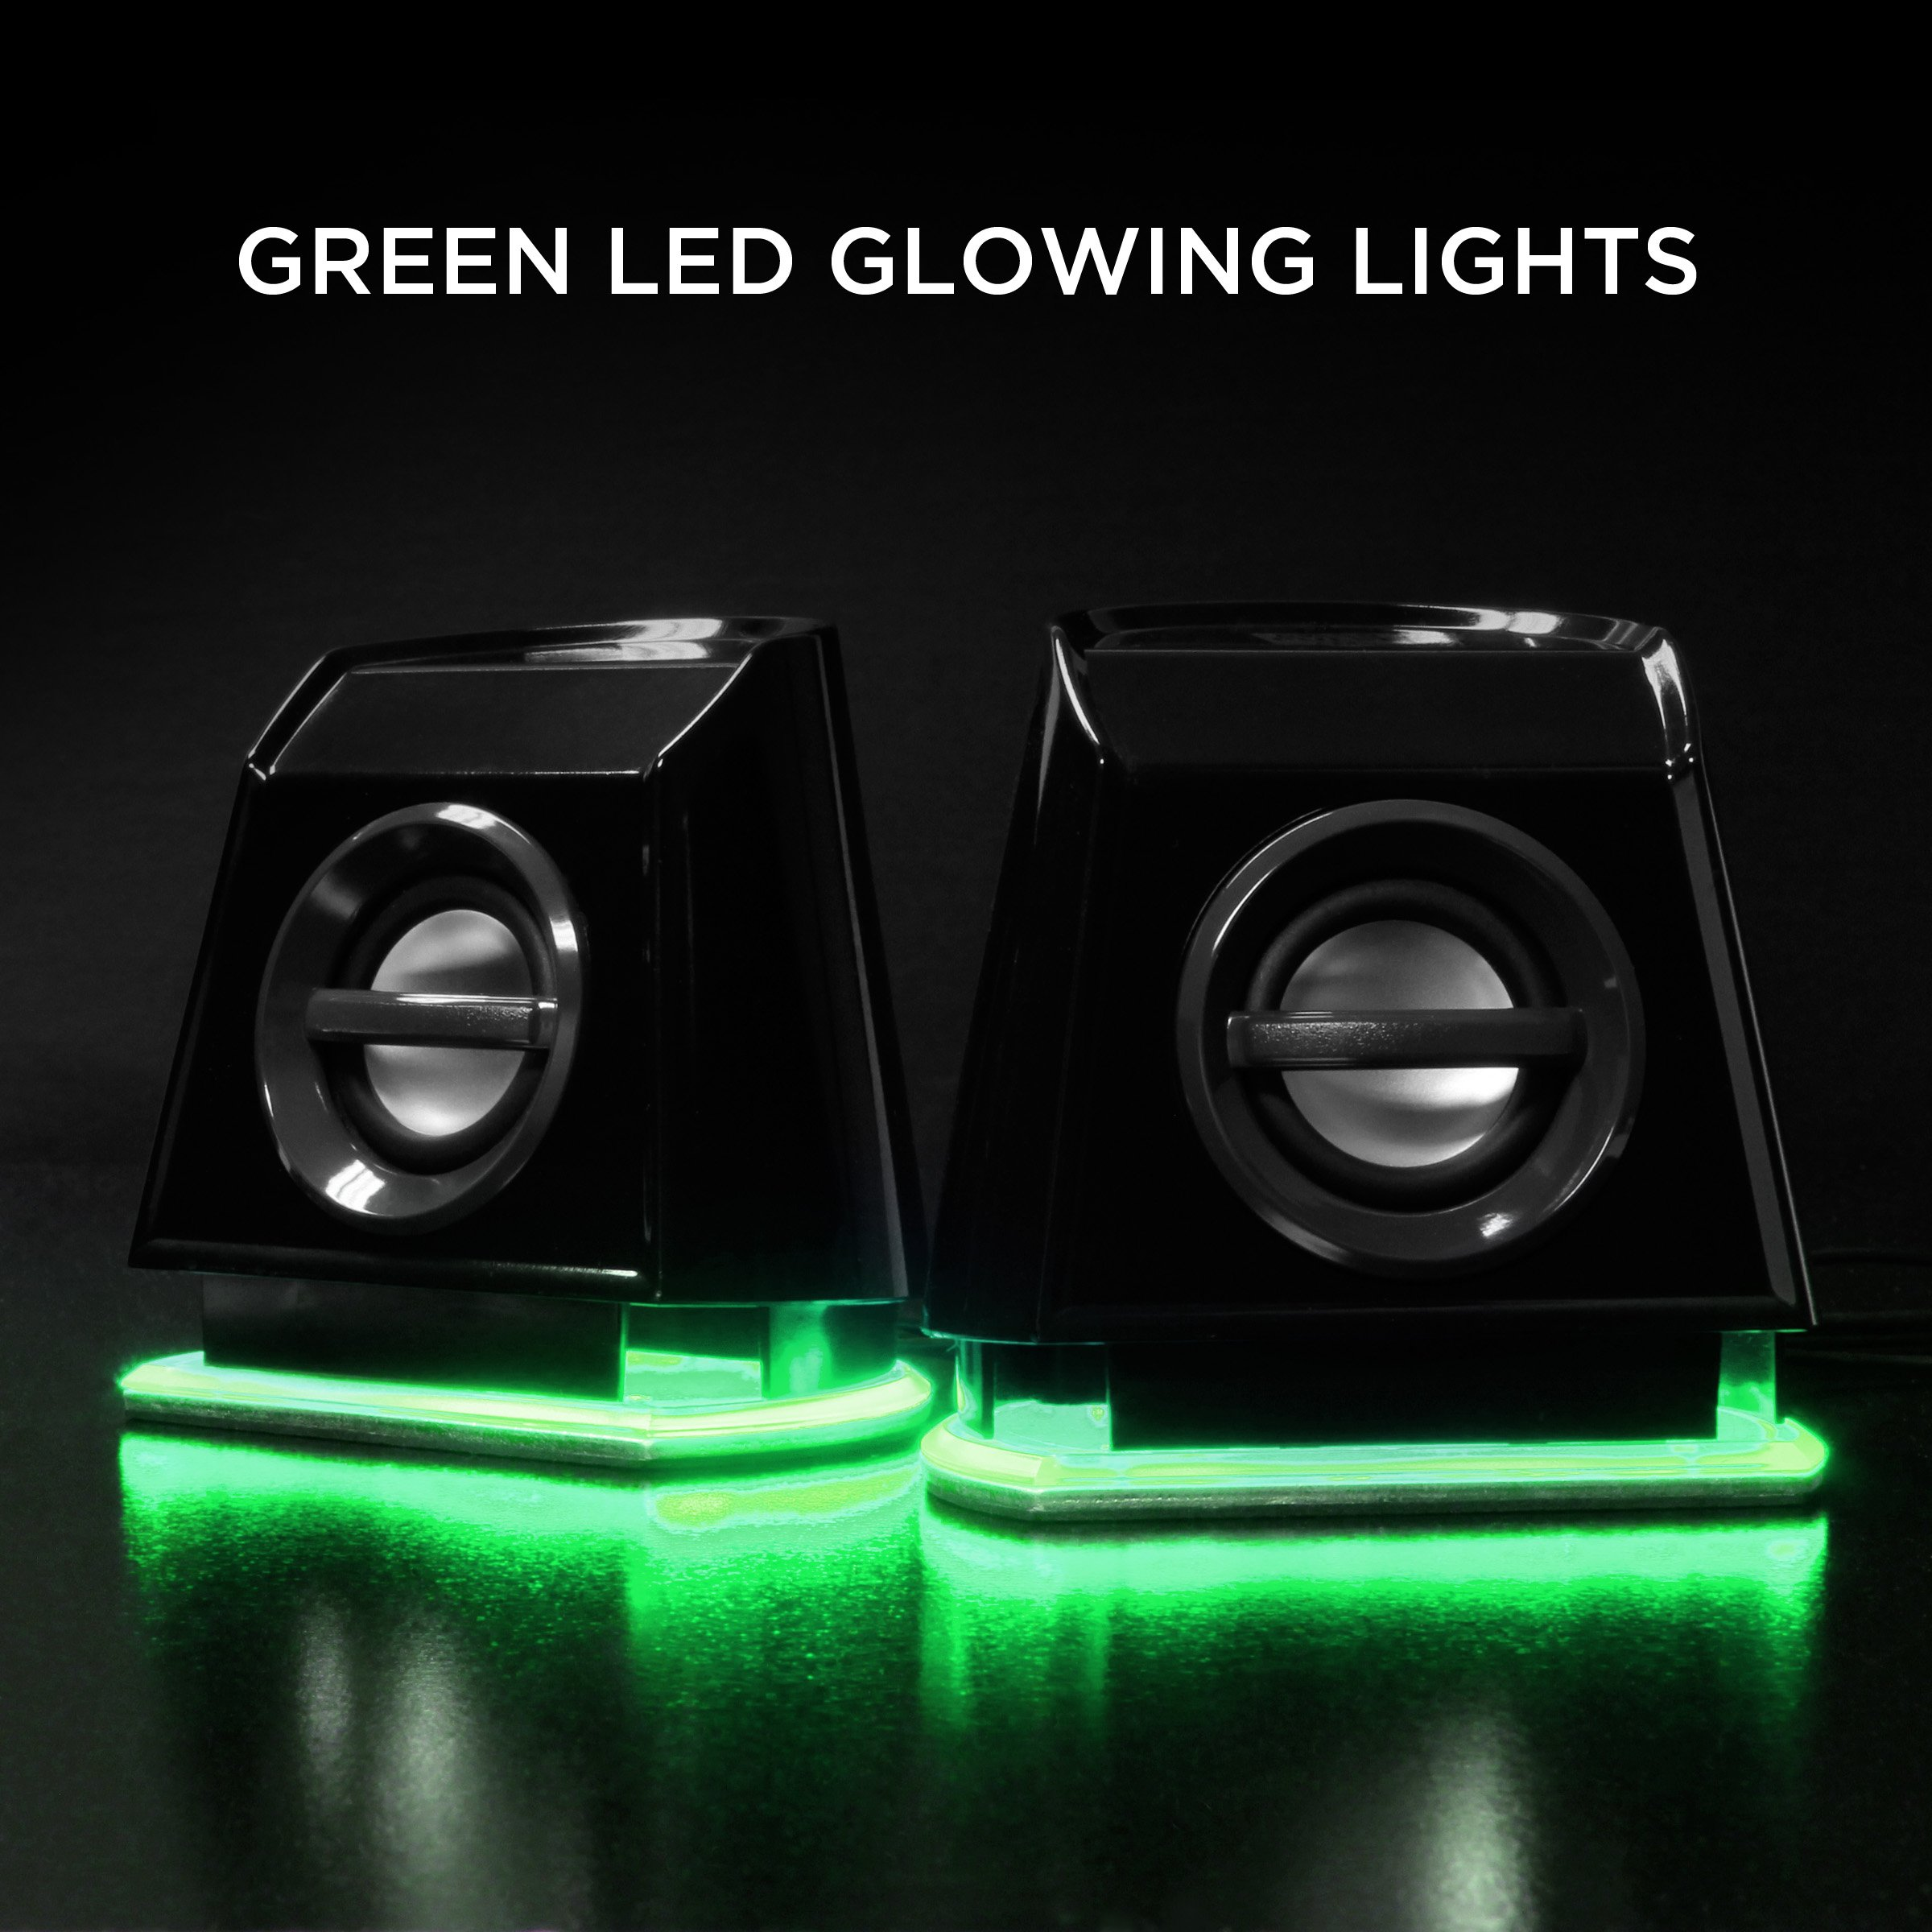 GOgroove 2MX LED Computer Speakers with Powered Subwoofer, Green Glowing Lights and Stereo Sound - Wired 3.5mm Audio Input Connection, USB Powered for PC, Desktop and Laptop Computers by GOgroove (Image #3)